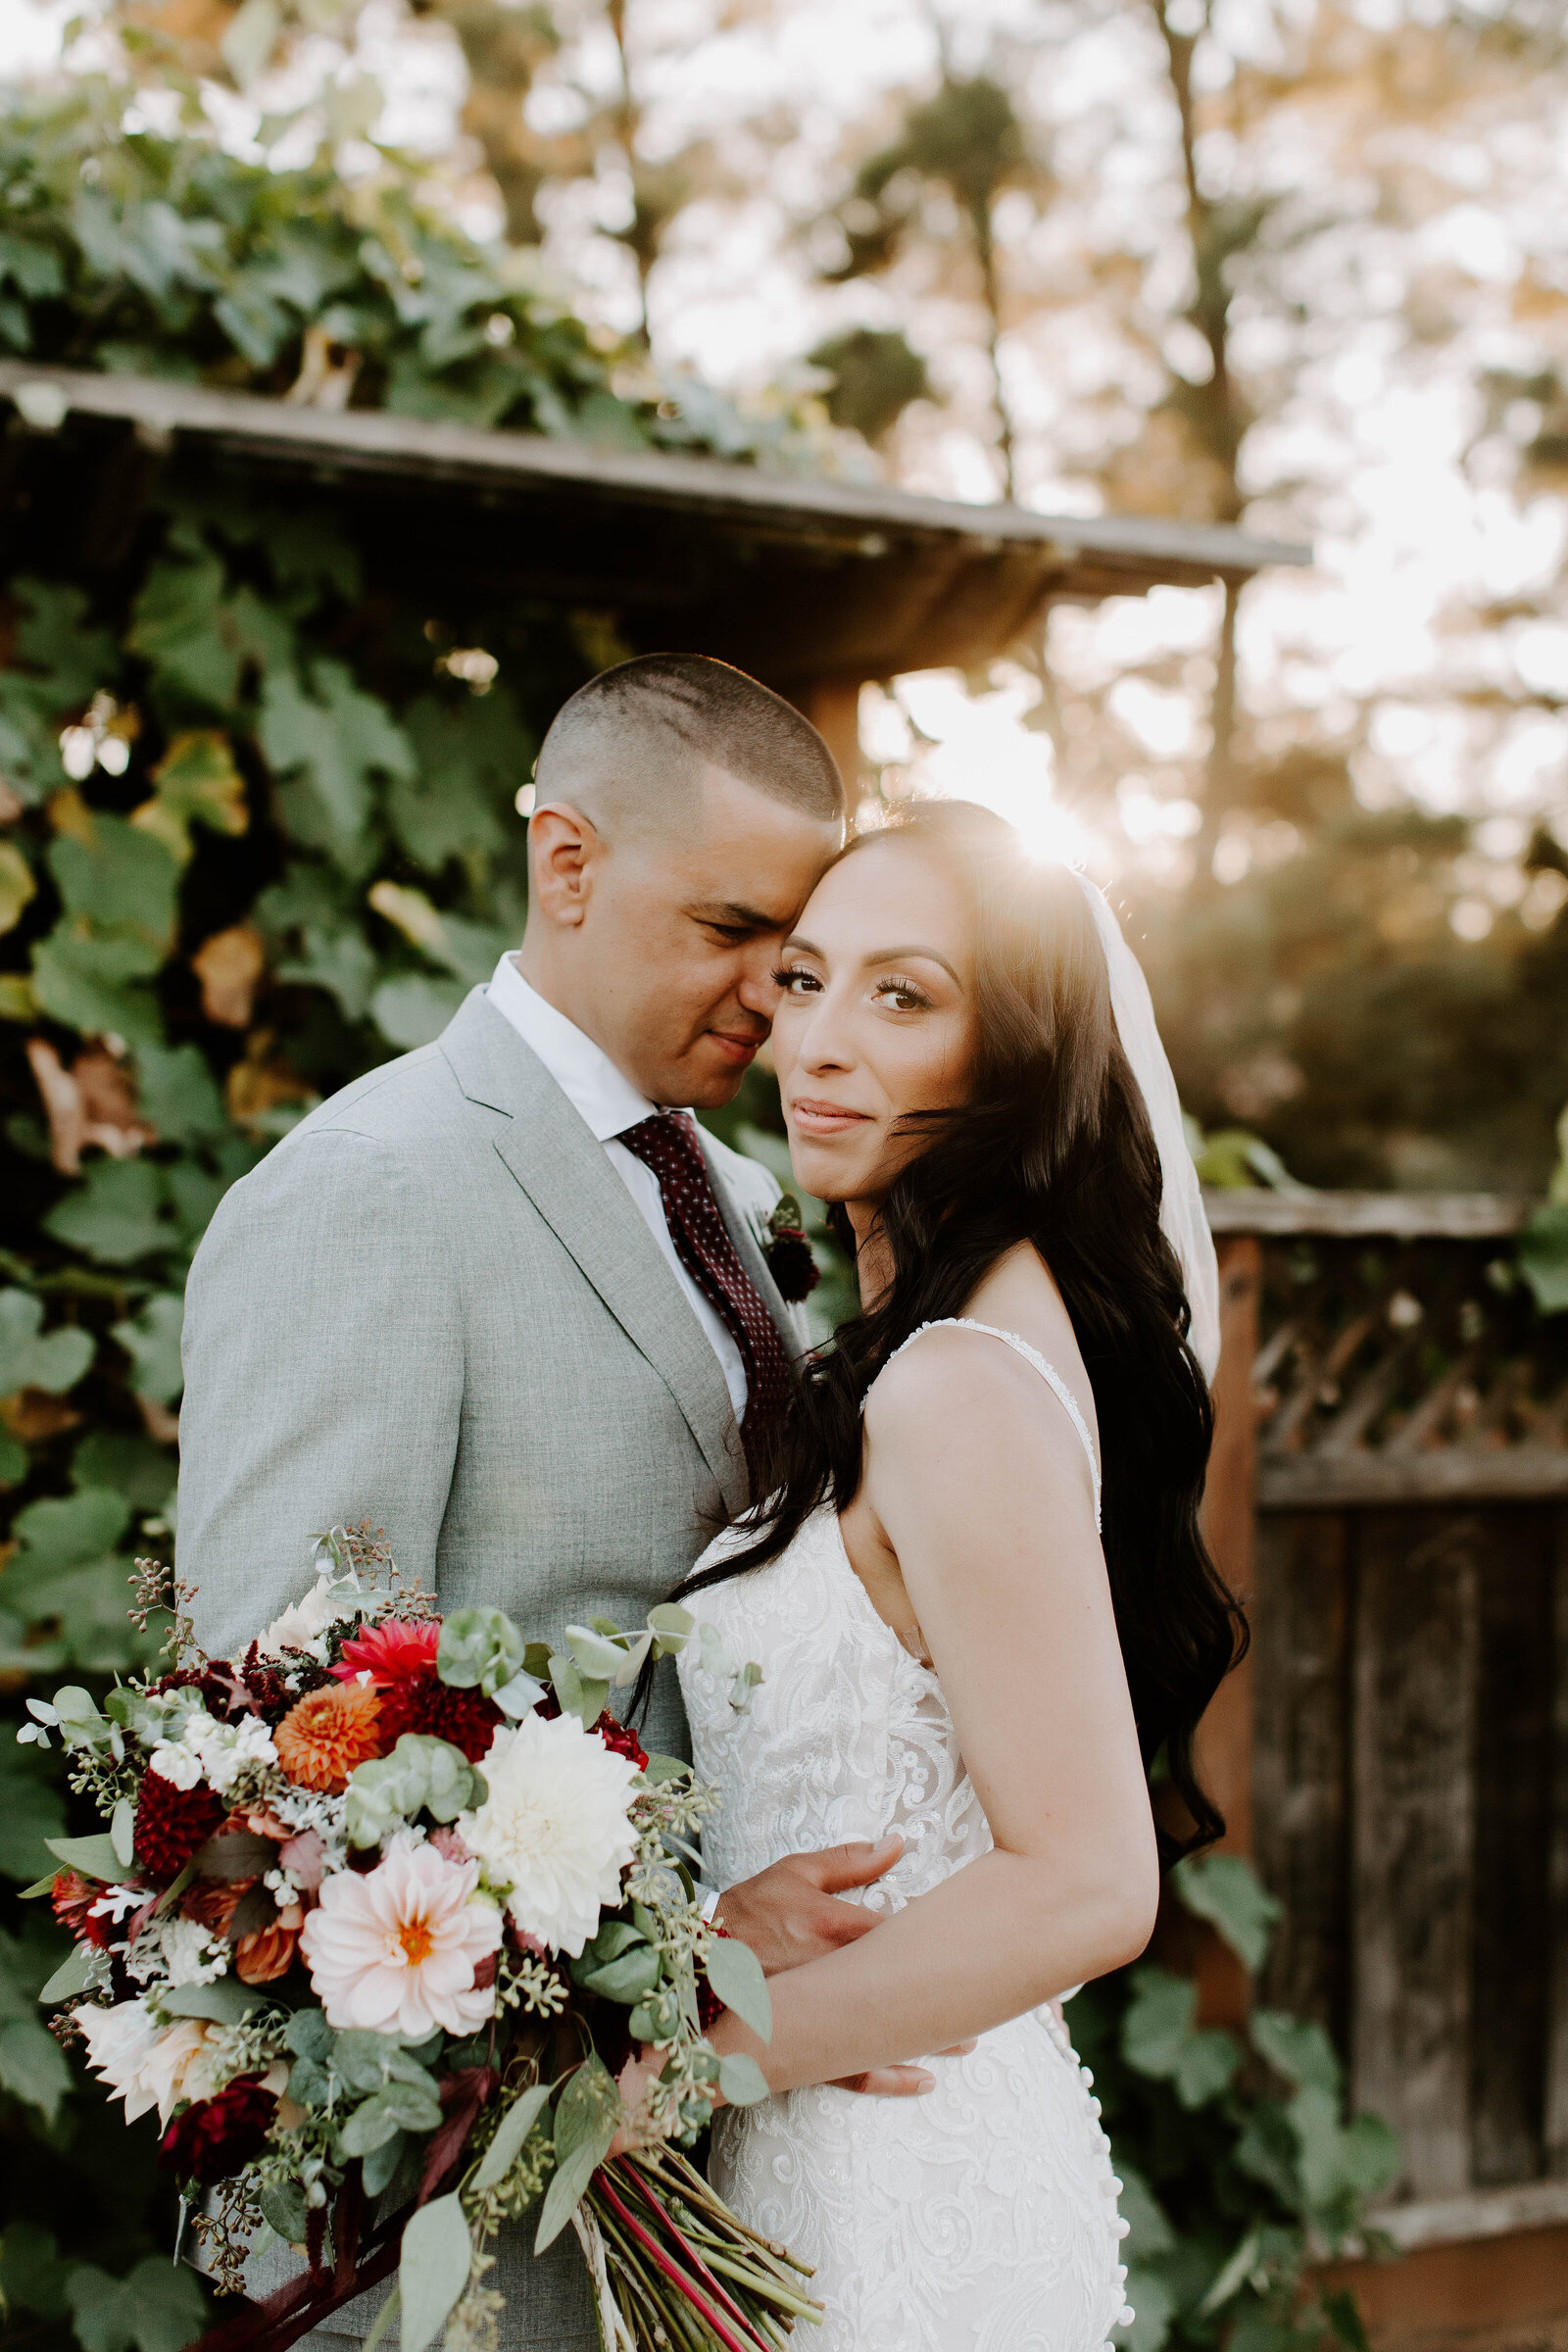 Hannah-Berglund-Photography_Nina-Matt_Morgan-Hill-Wedding-433